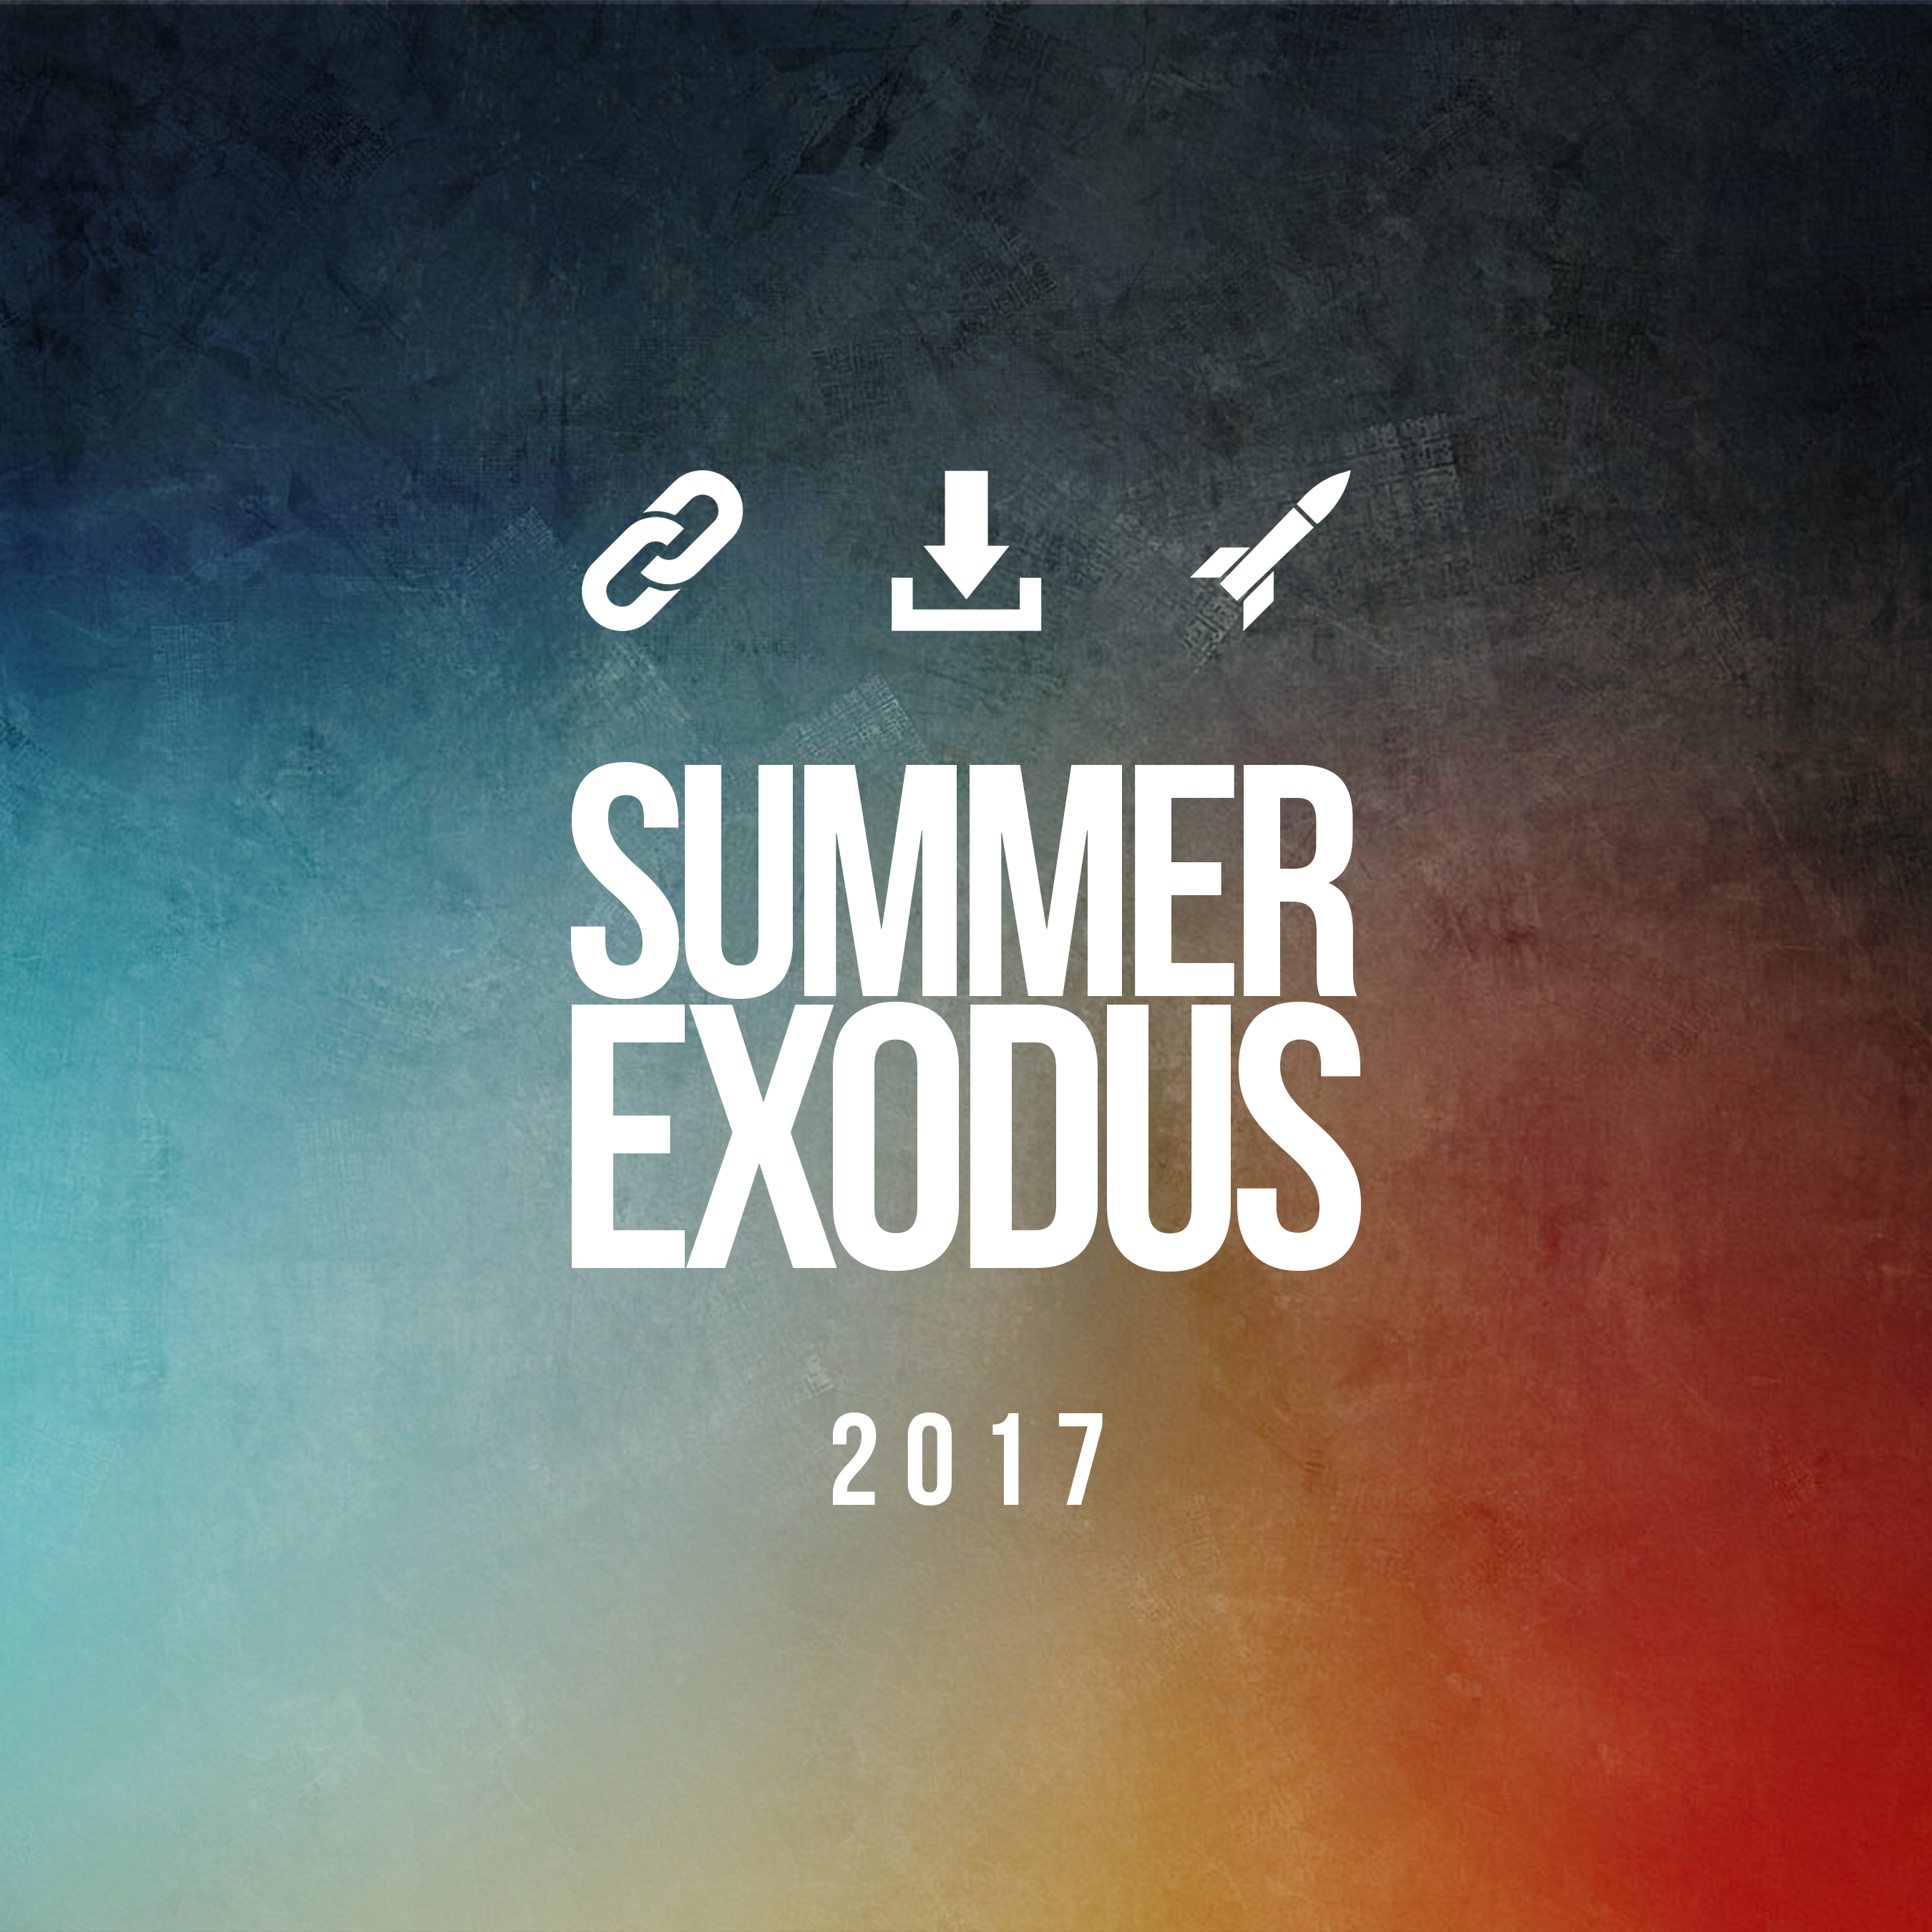 Summerexodus17square